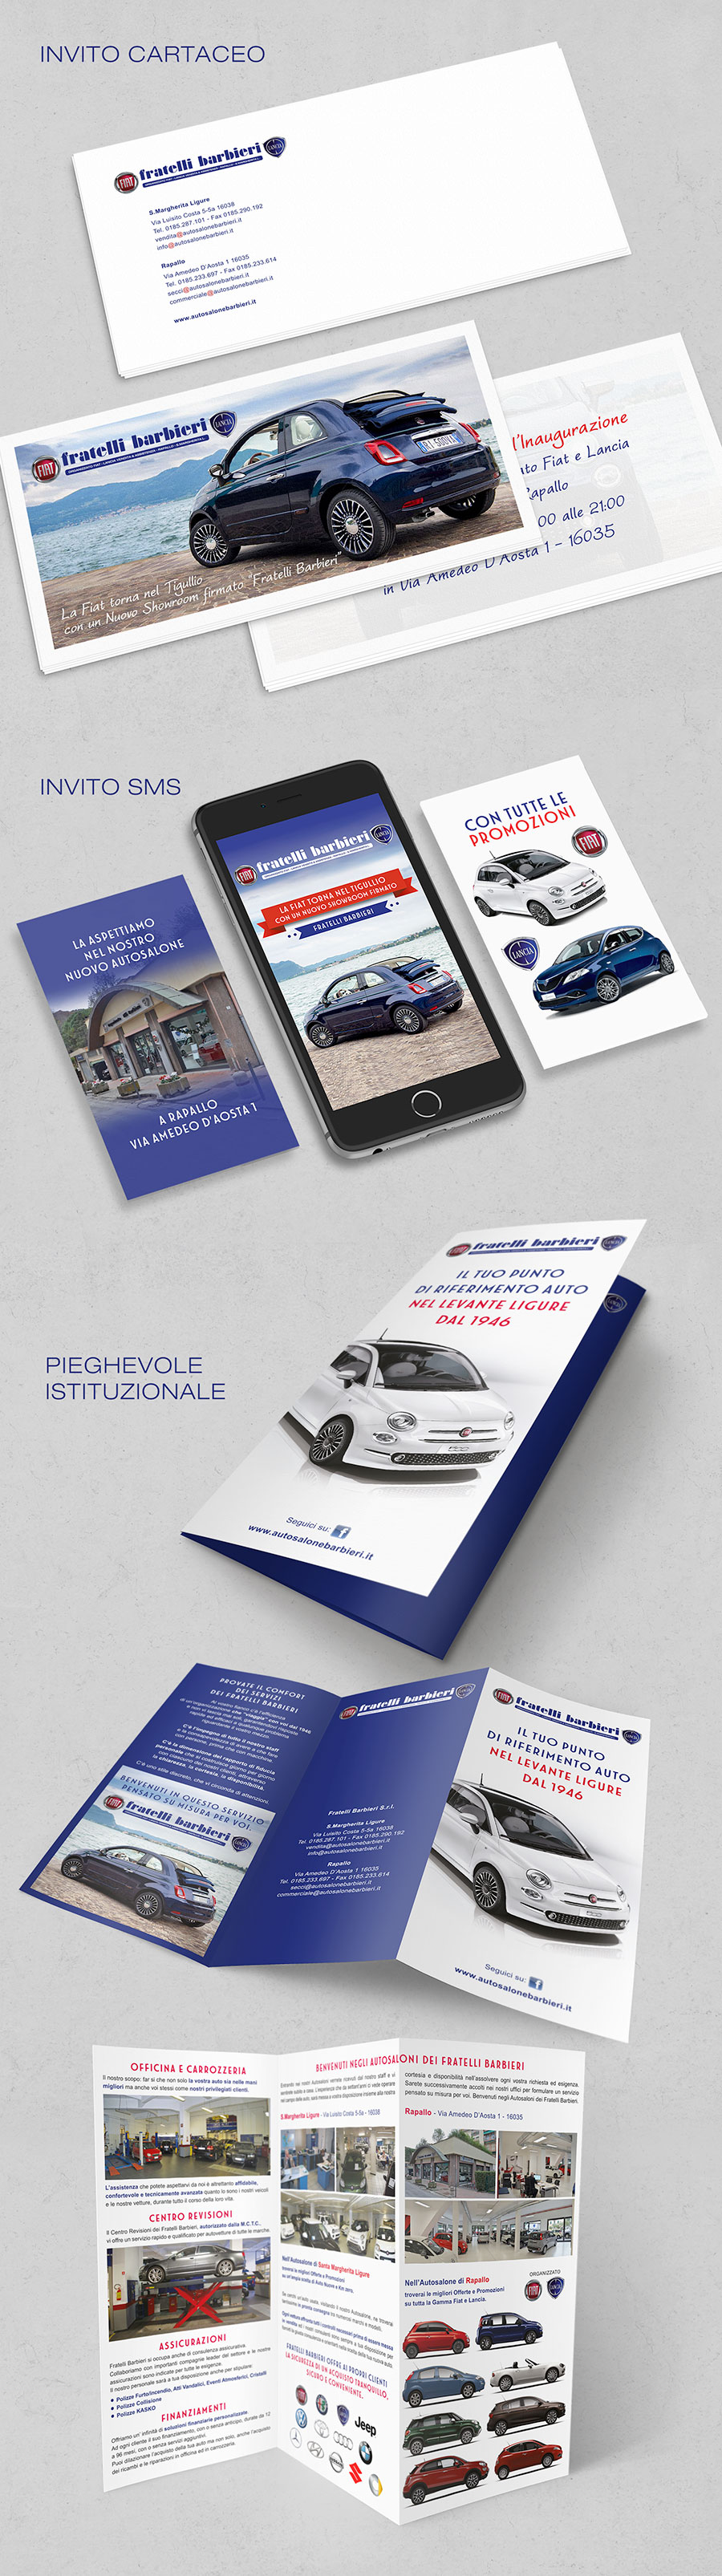 belink-design-fratelli-barbieri-invito-sms-marketing-brochure-flyer-inaugurazione